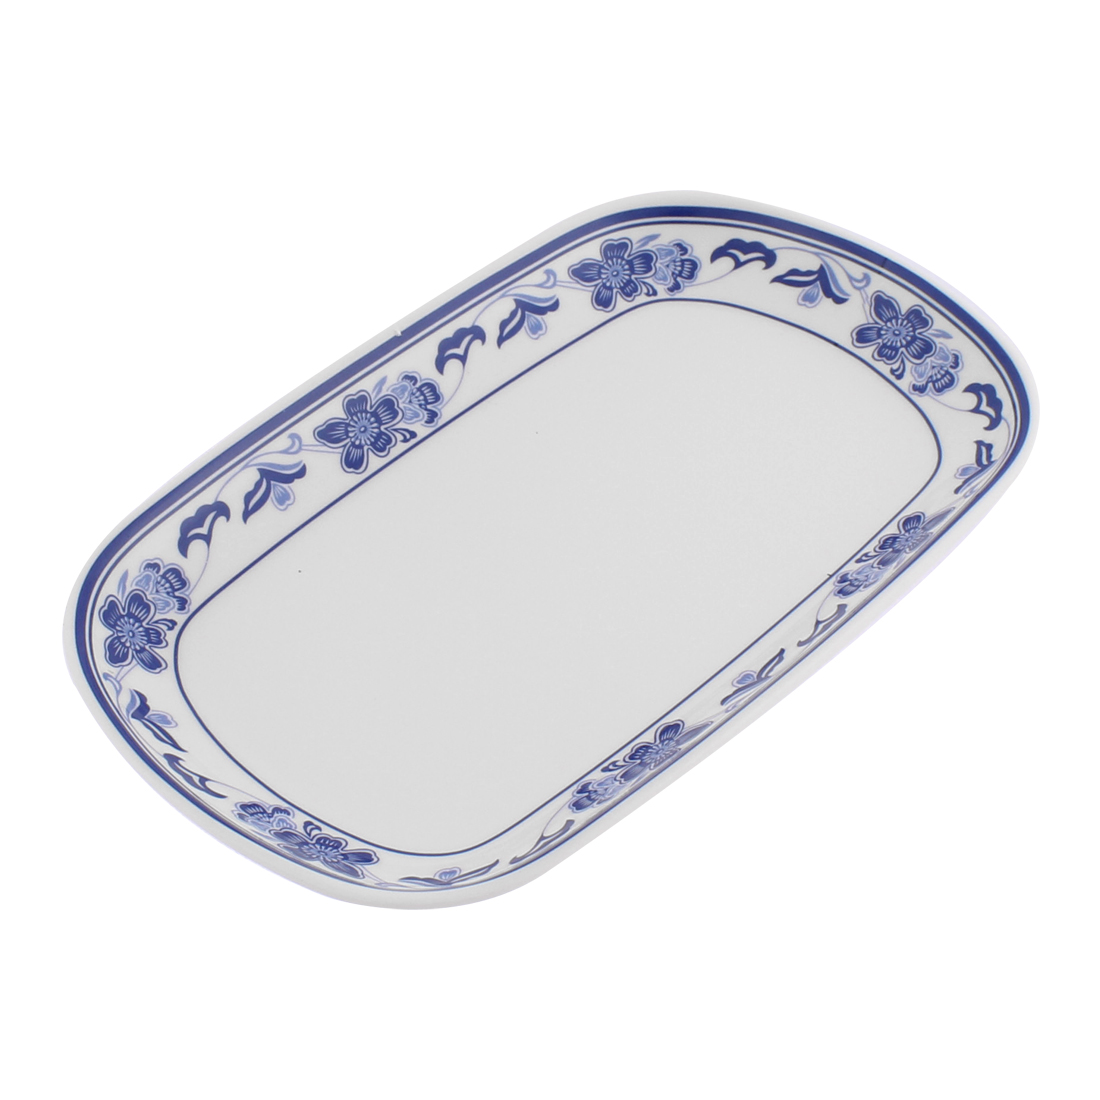 Flower Printed Edge Rectangle Shaped Food Dish Plate White Blue 19x12cm